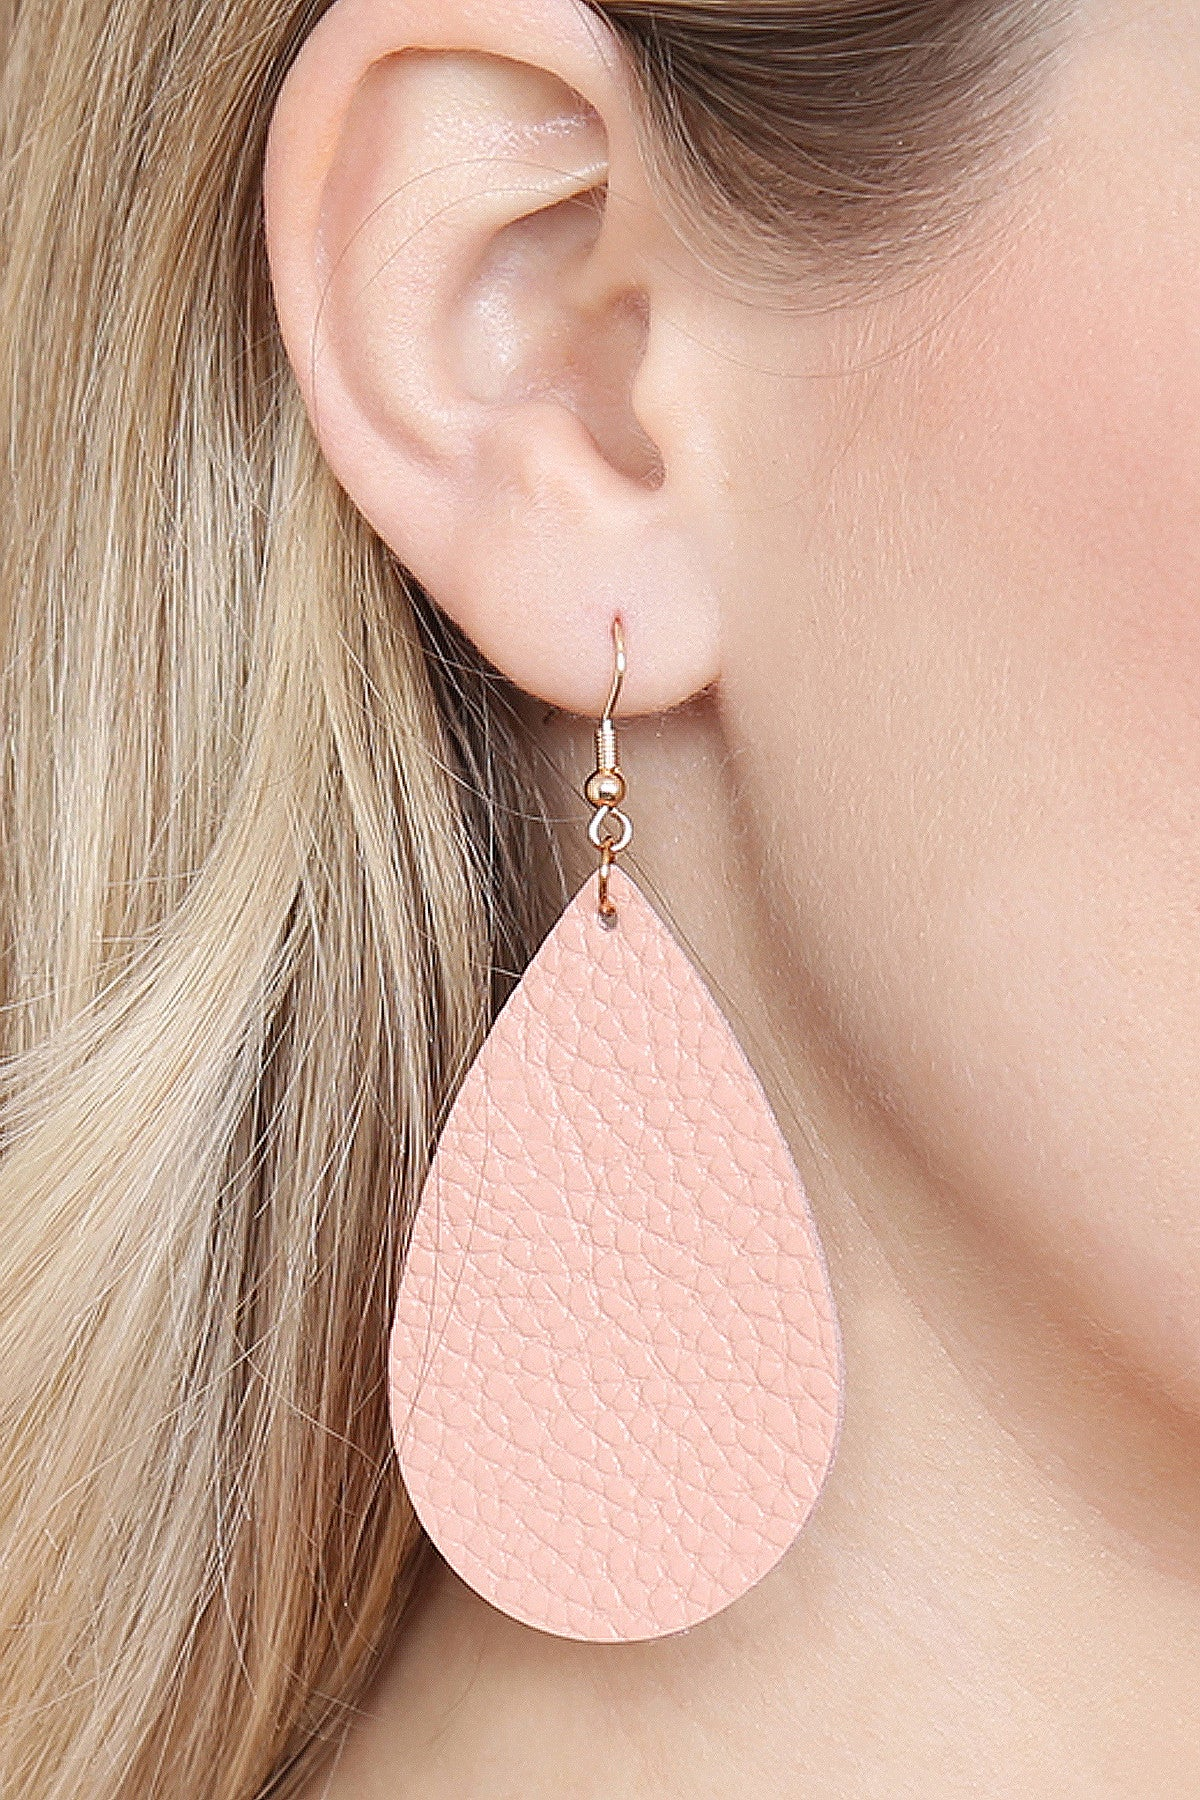 Leather Teardrop Earrings in Blush - Enclothe Boutique